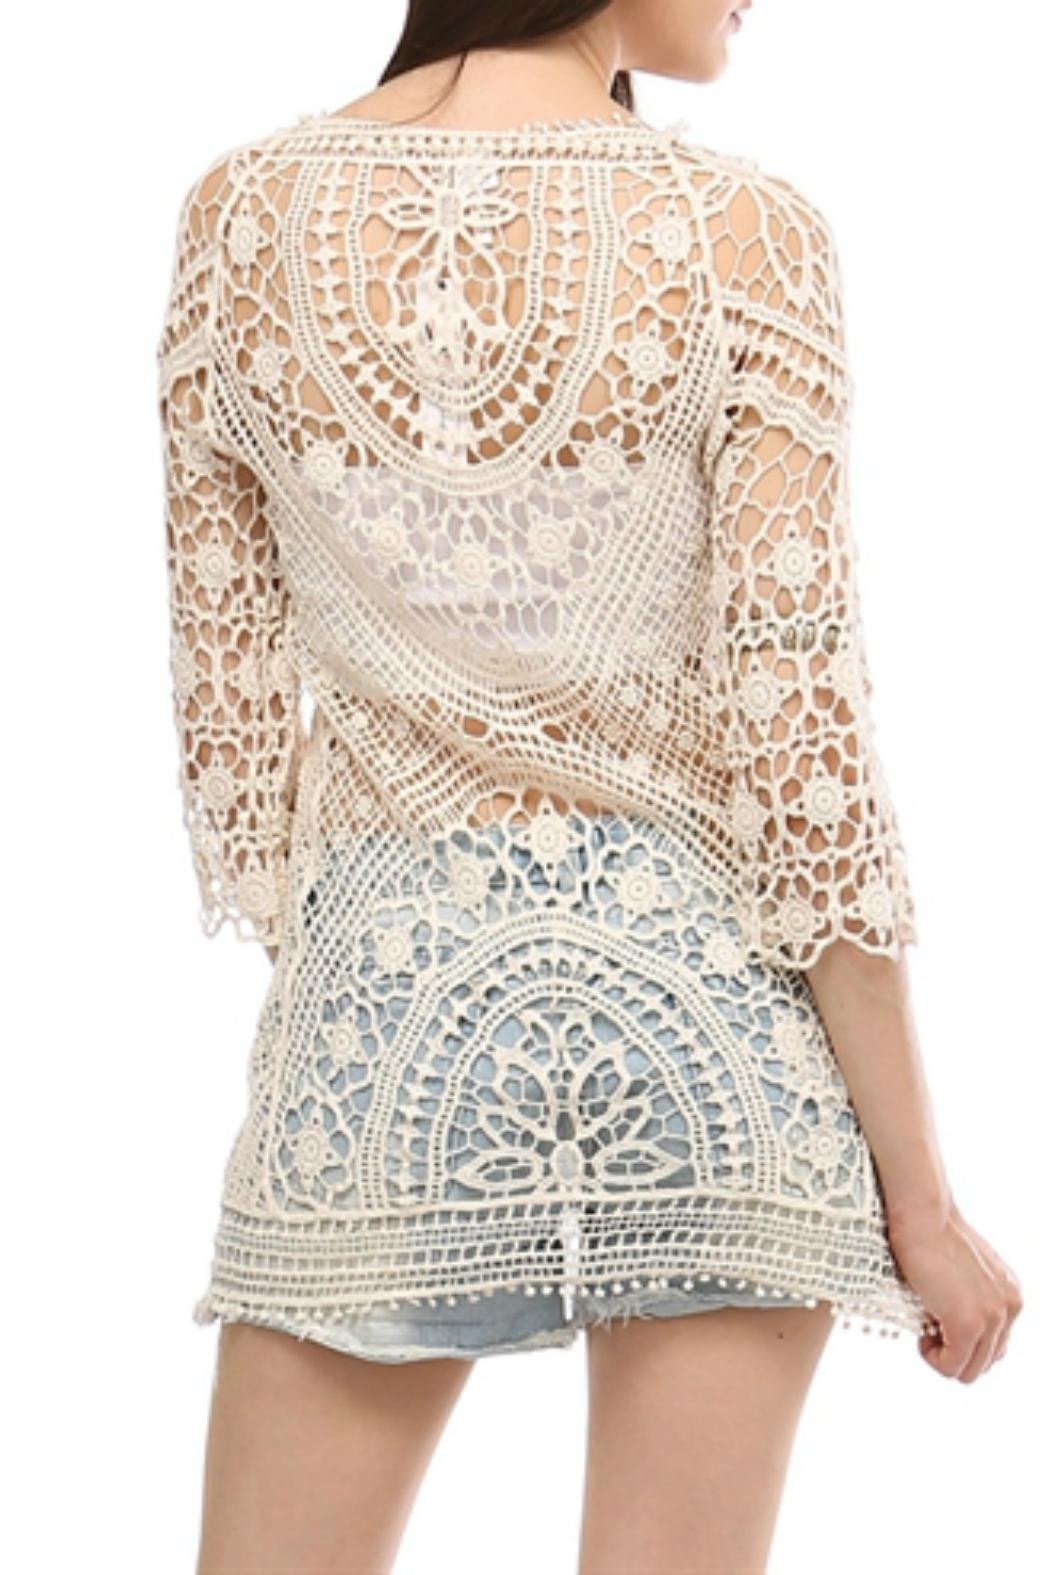 Boho Crochet Top from Missouri by Front Porch Boutique